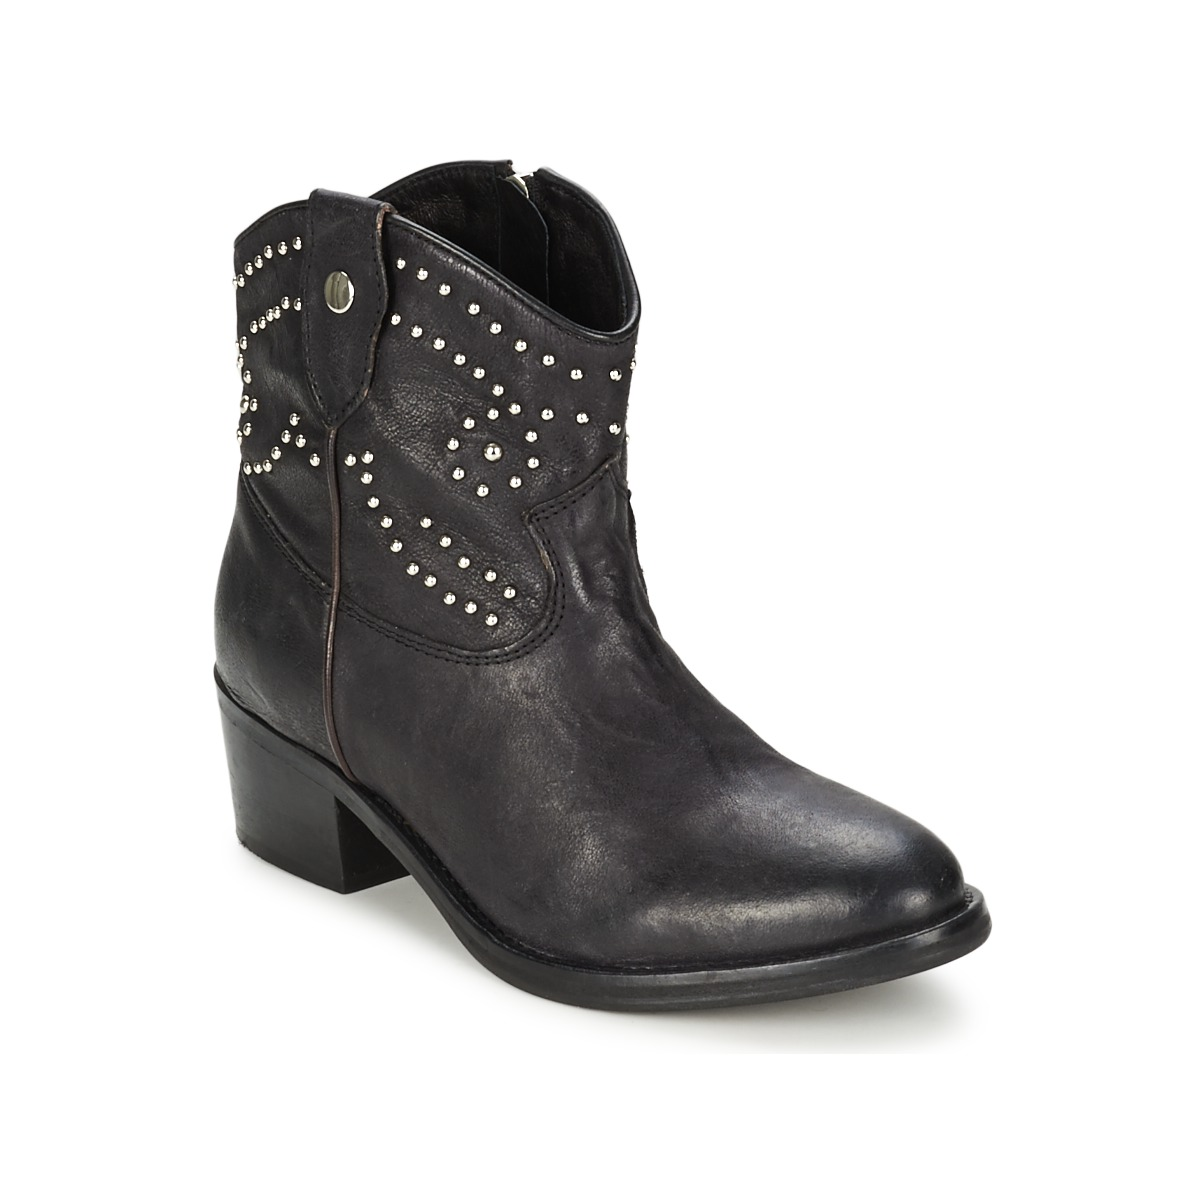 Koah ELISSA women's Mid Boots in Inexpensive Cheap Price Visit Sale Online Buy Cheap Reliable Manchester rdBjCiS